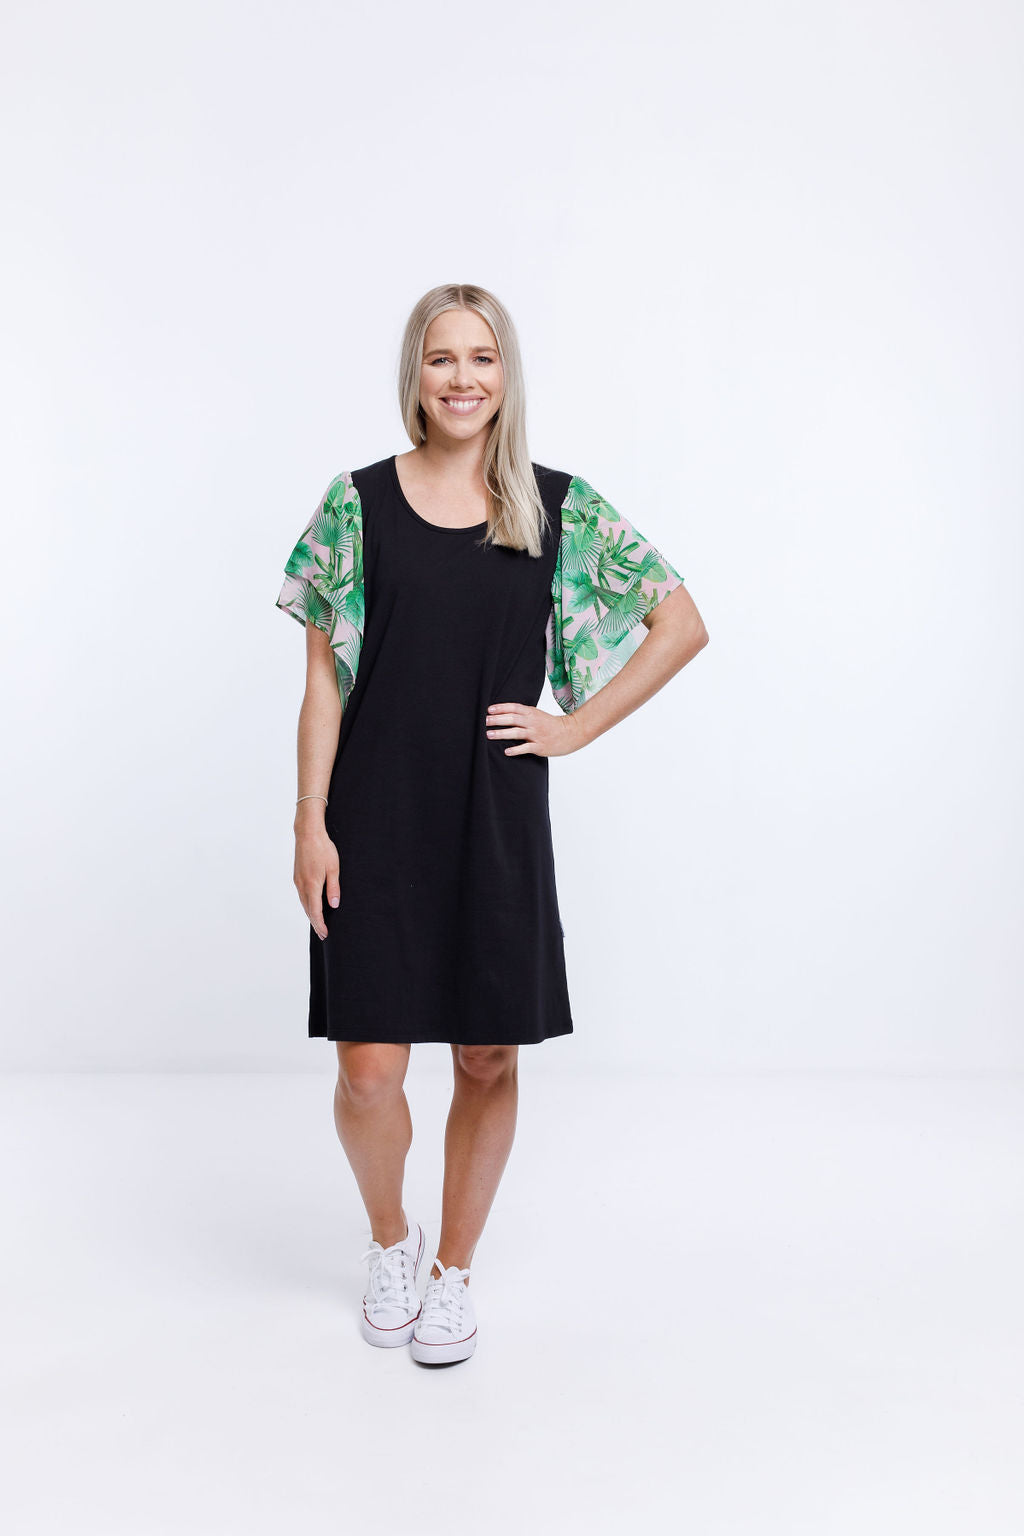 LOLA DRESS - Black with Tropical Palm Print